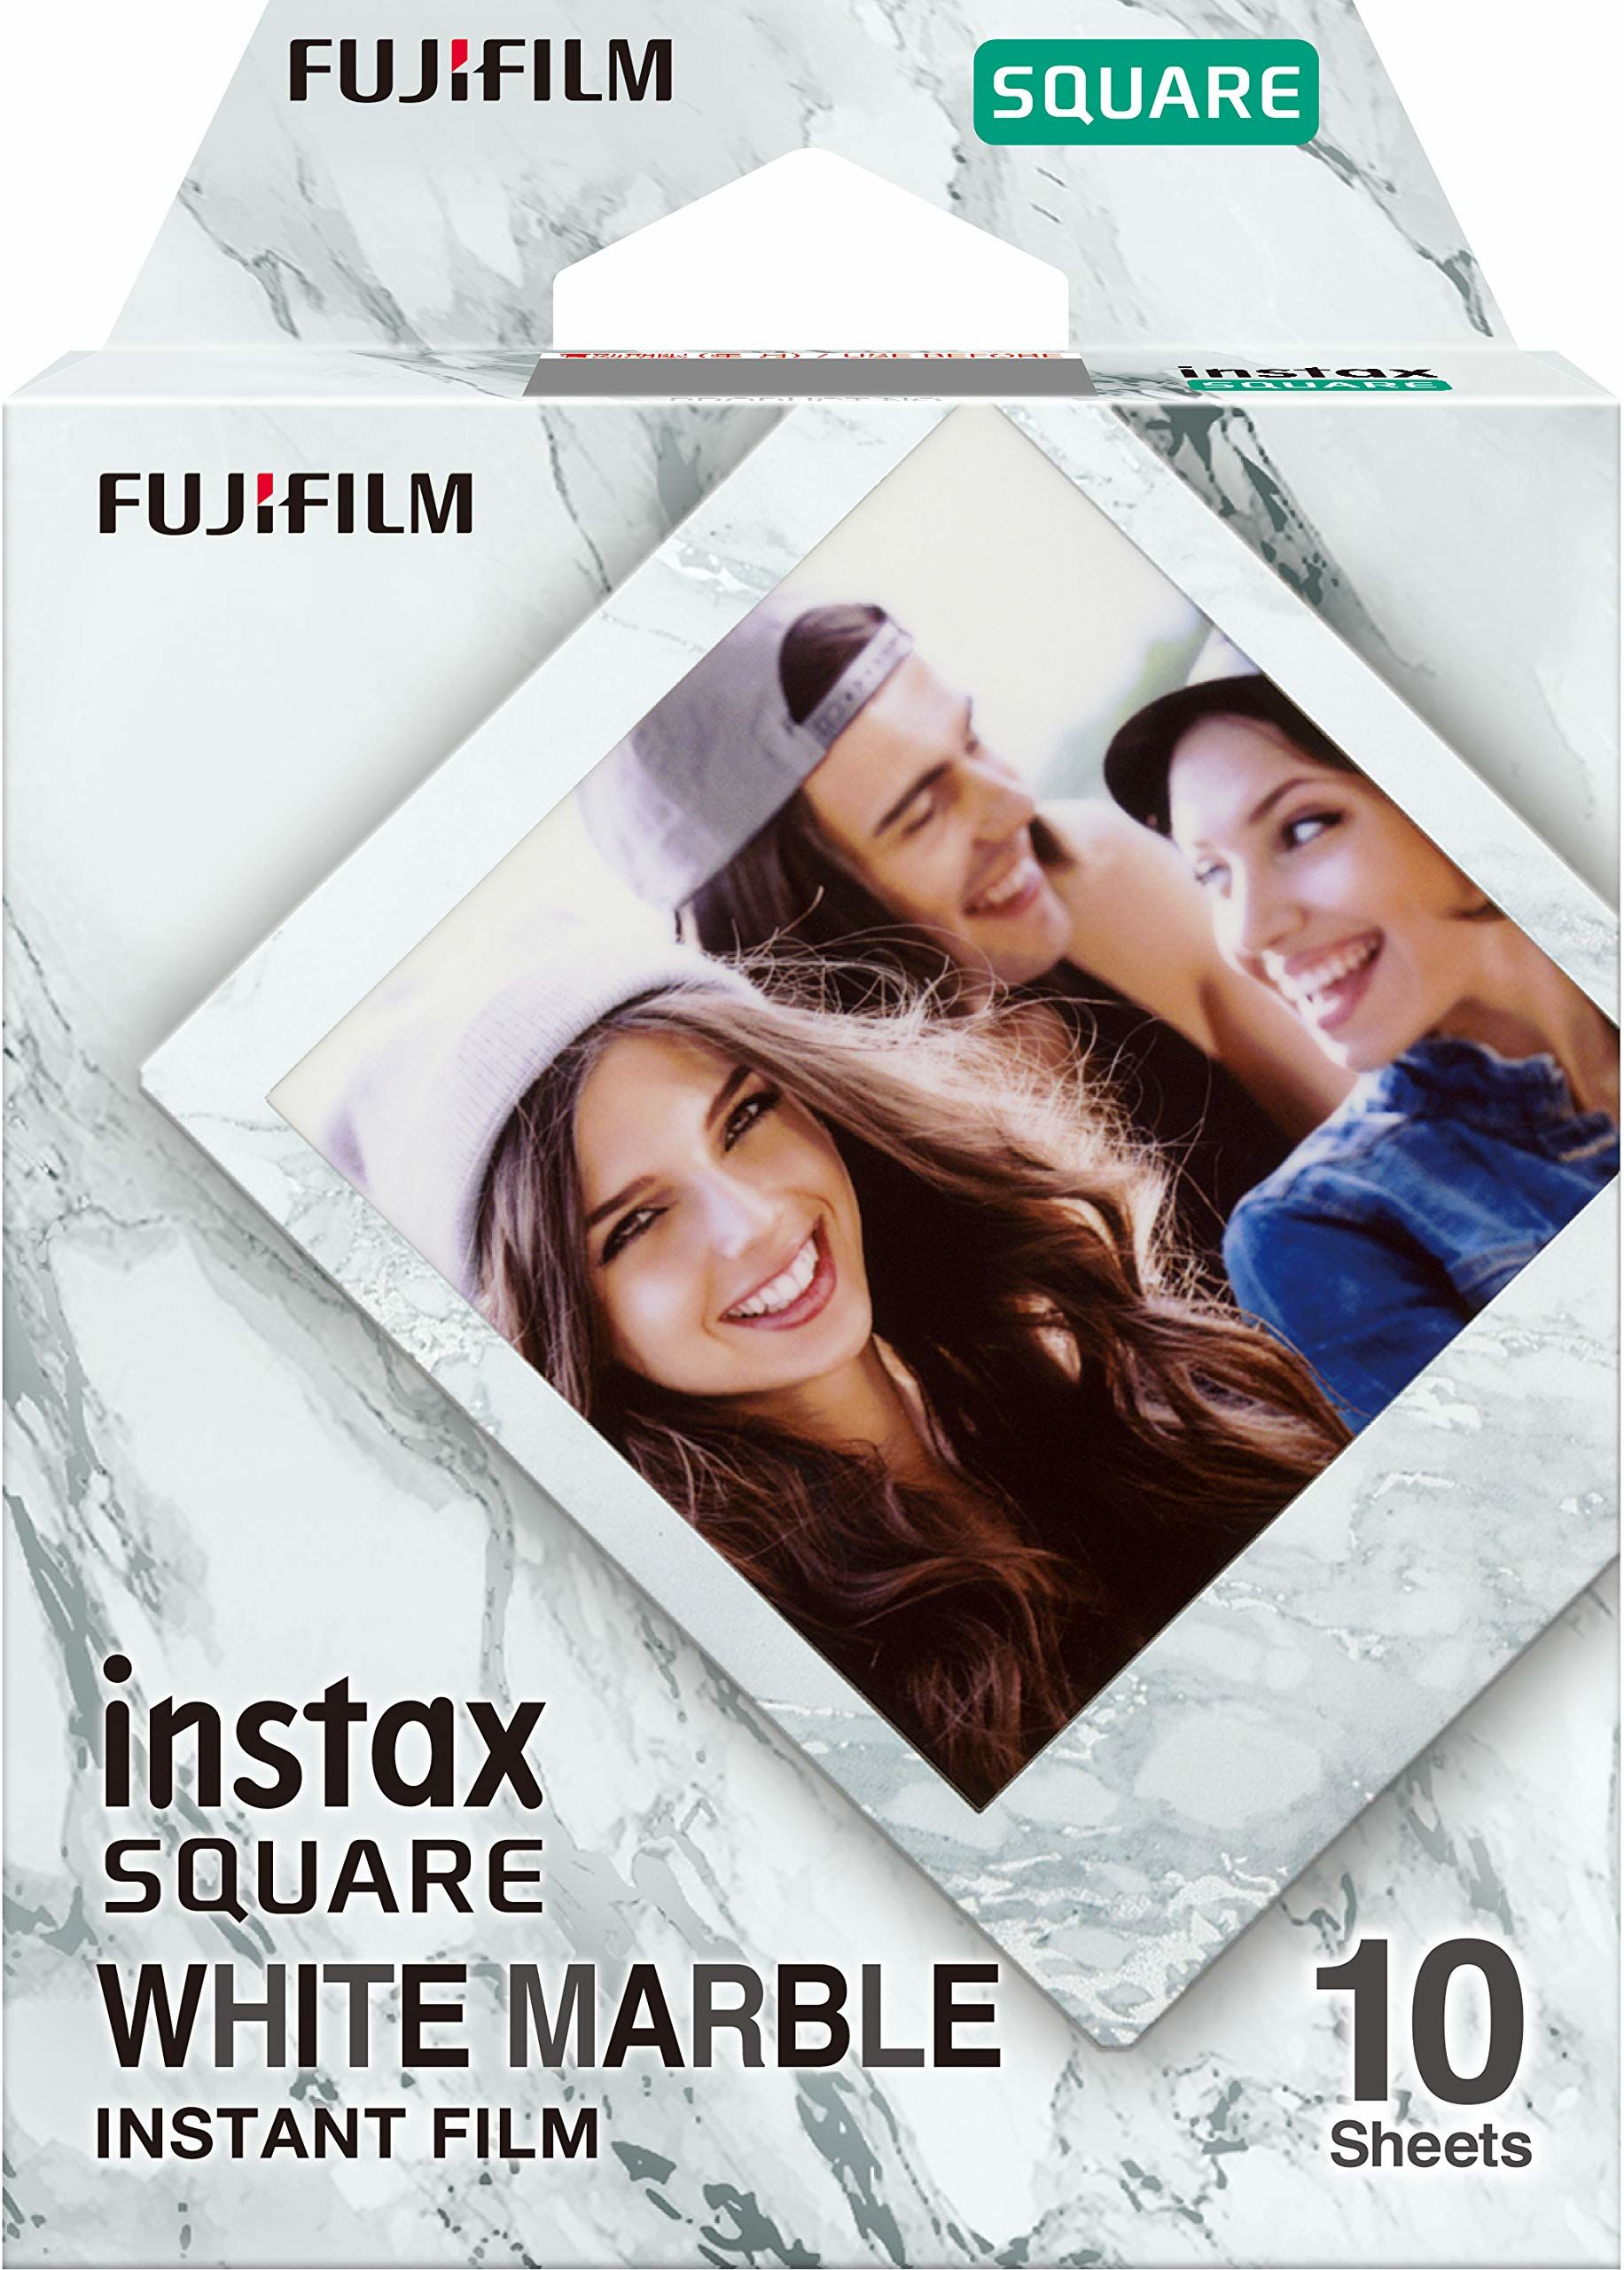 INSTAX SQ WHITEMARBLE, 10 shot pack